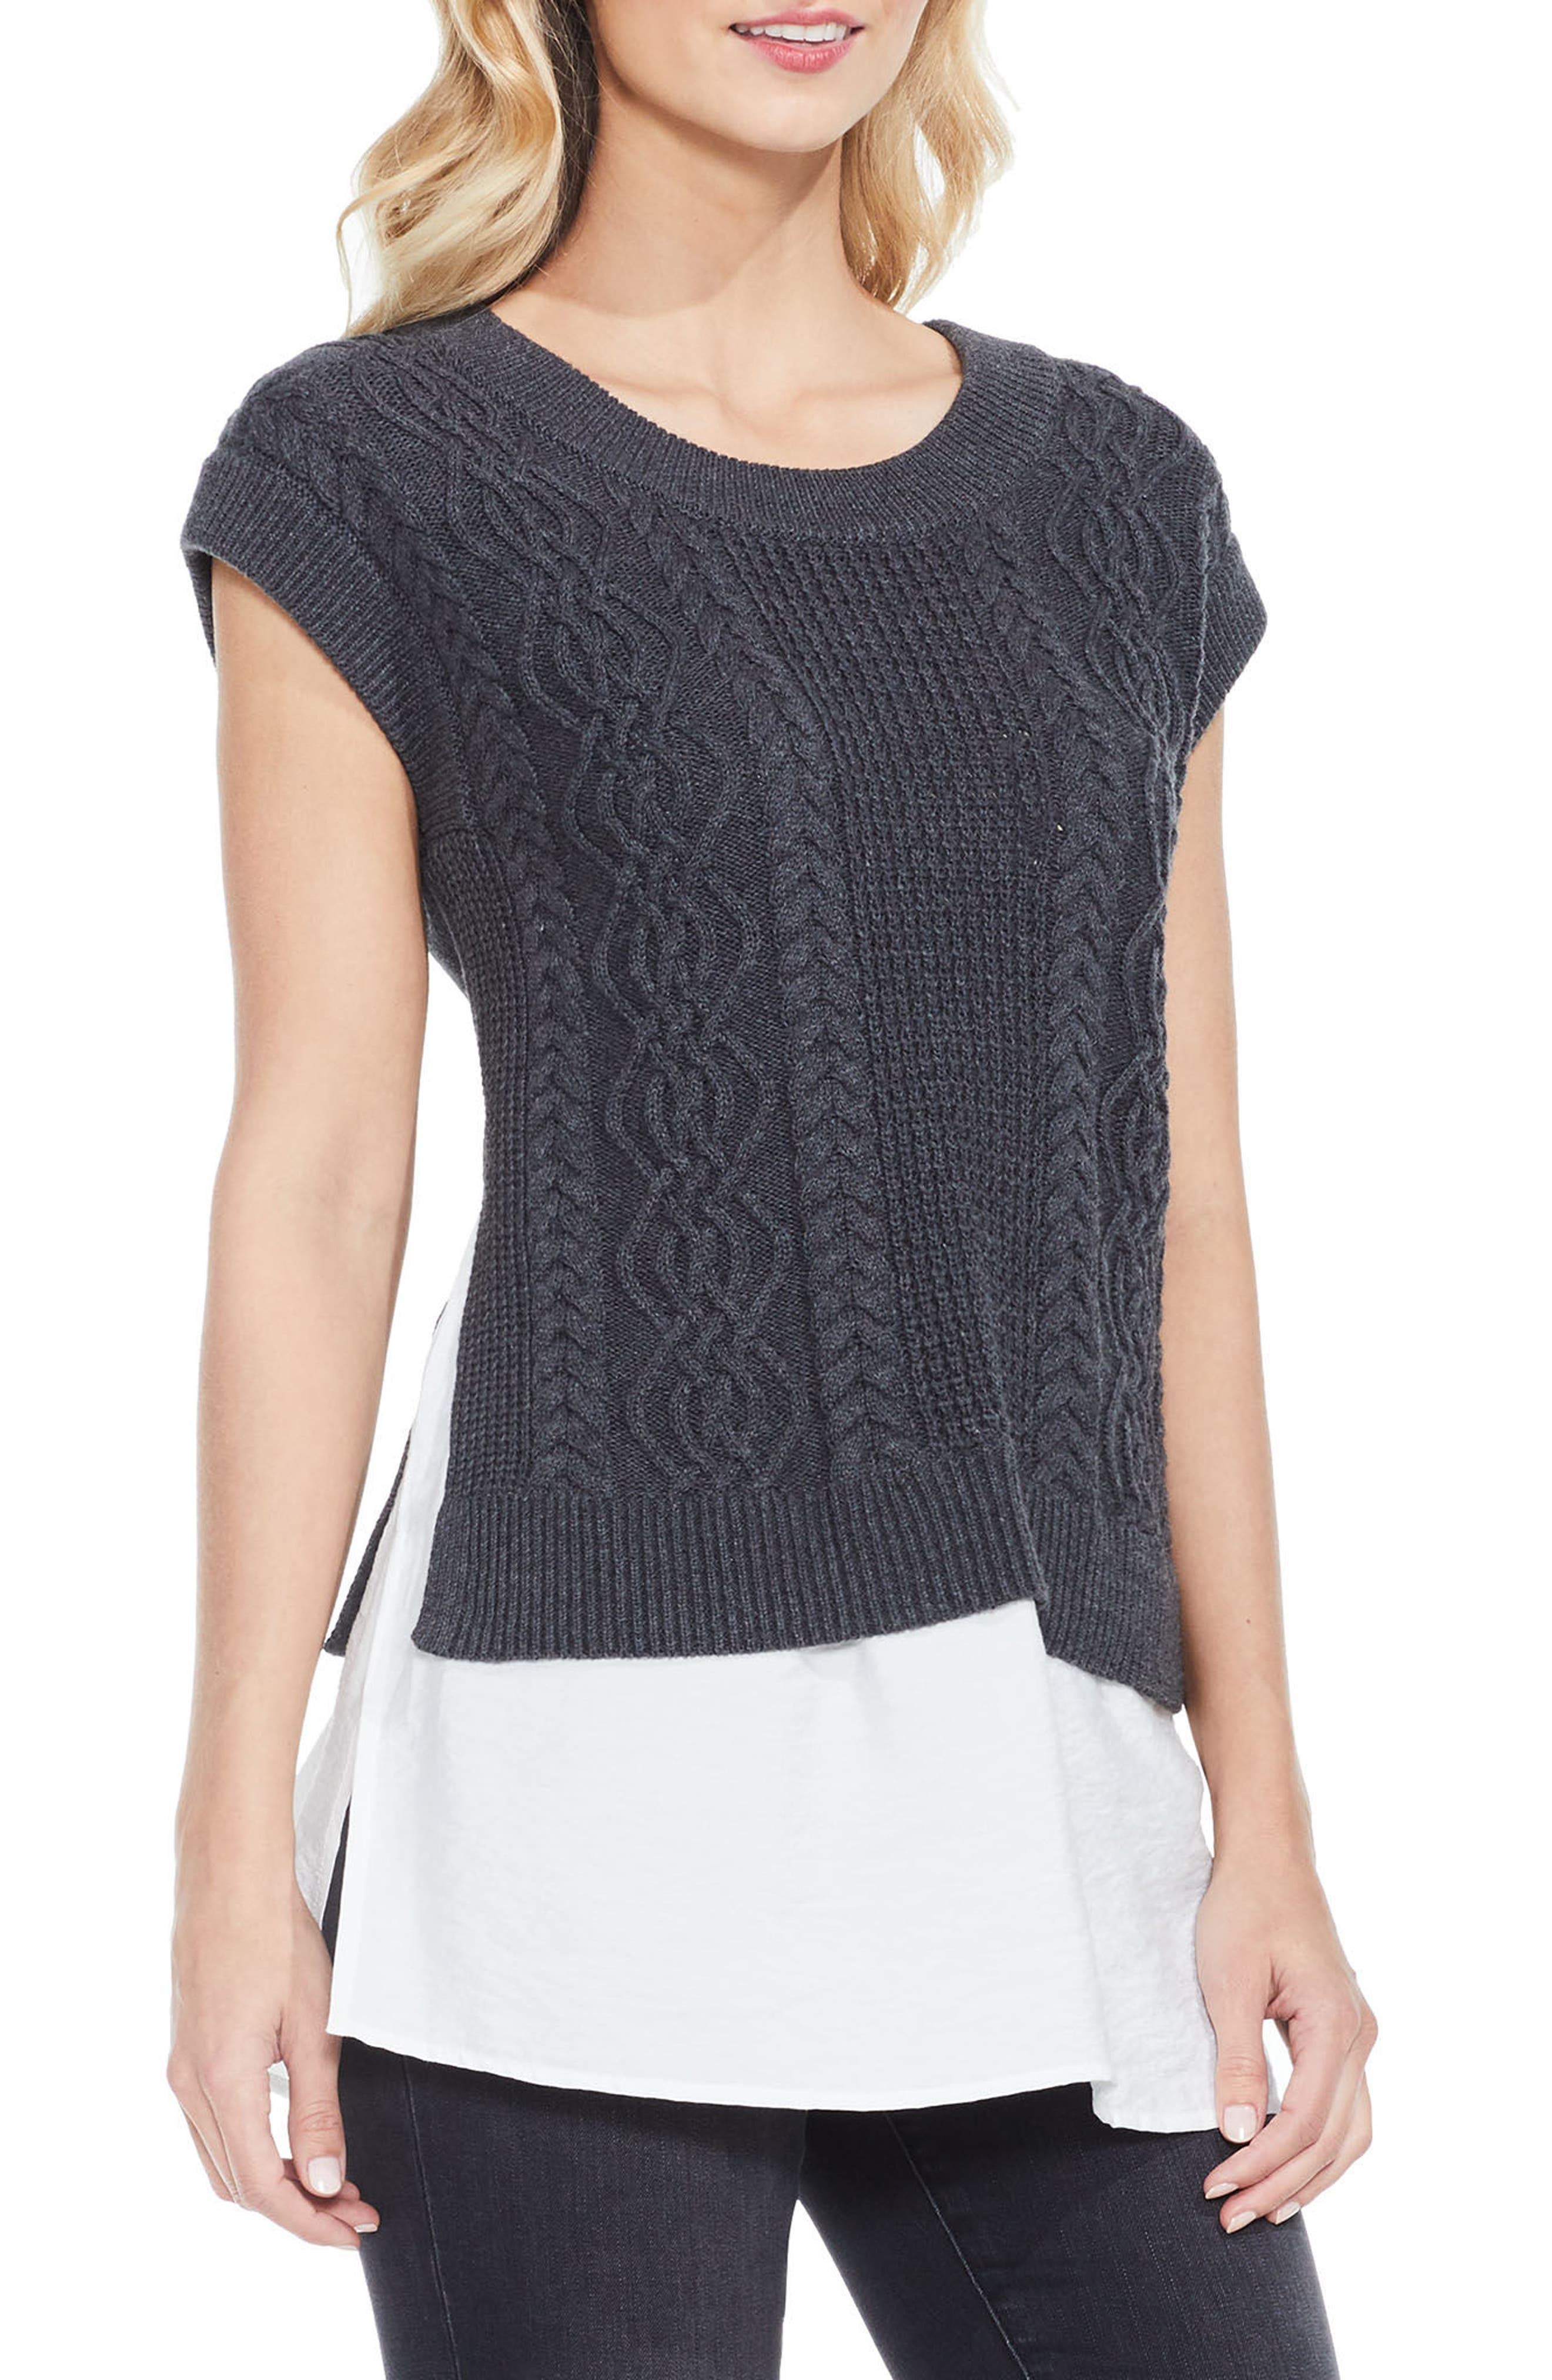 Main Image - Two by Vince Camuto Layered Look Cable Sweater